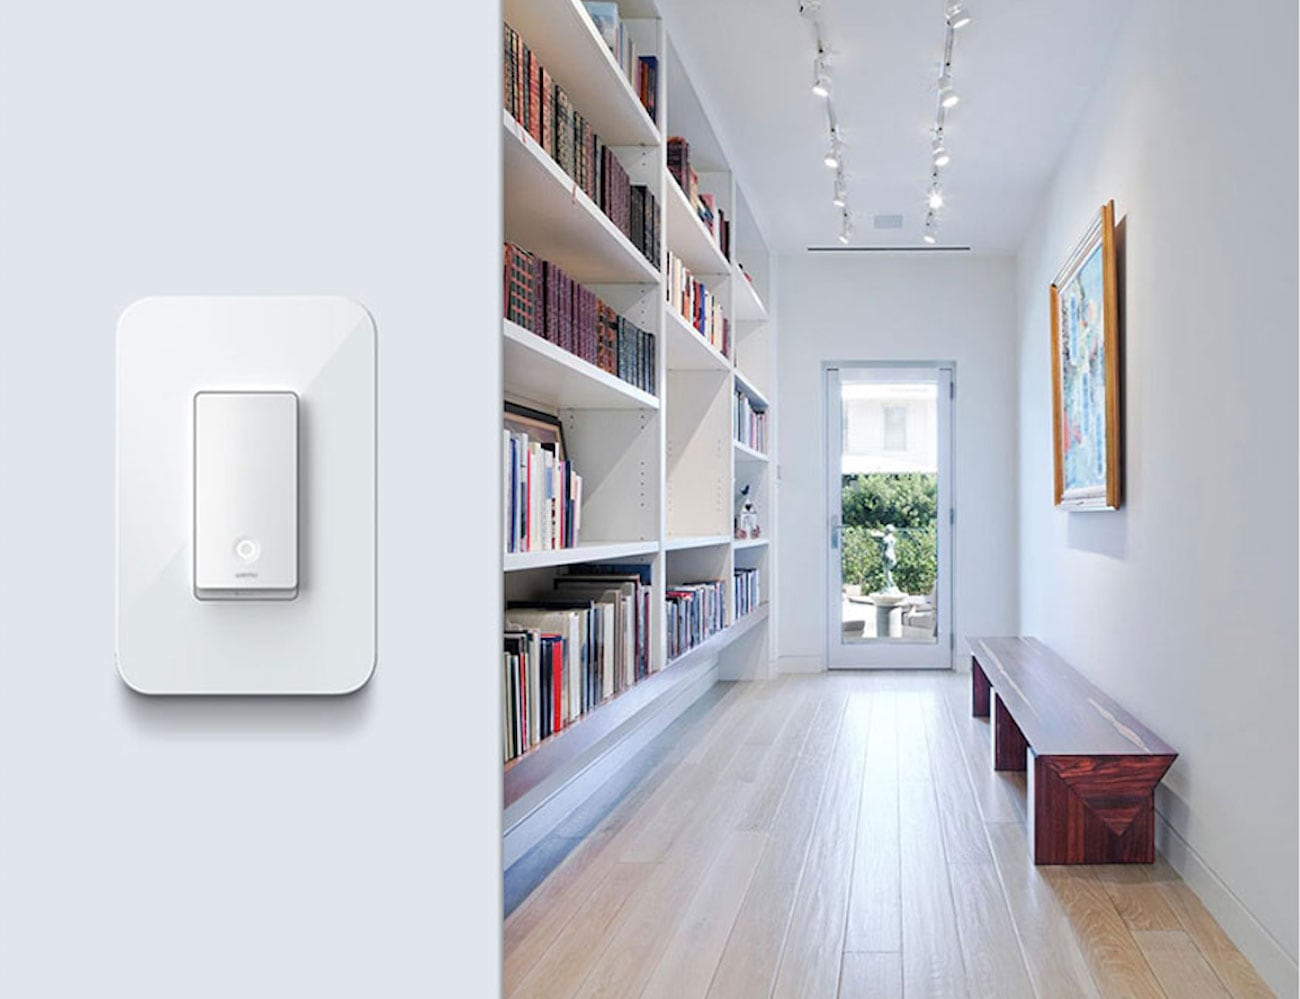 Belkin Wemo Smart Light Switch 3-Way Wi-Fi Switch lets you control your lights with your voice